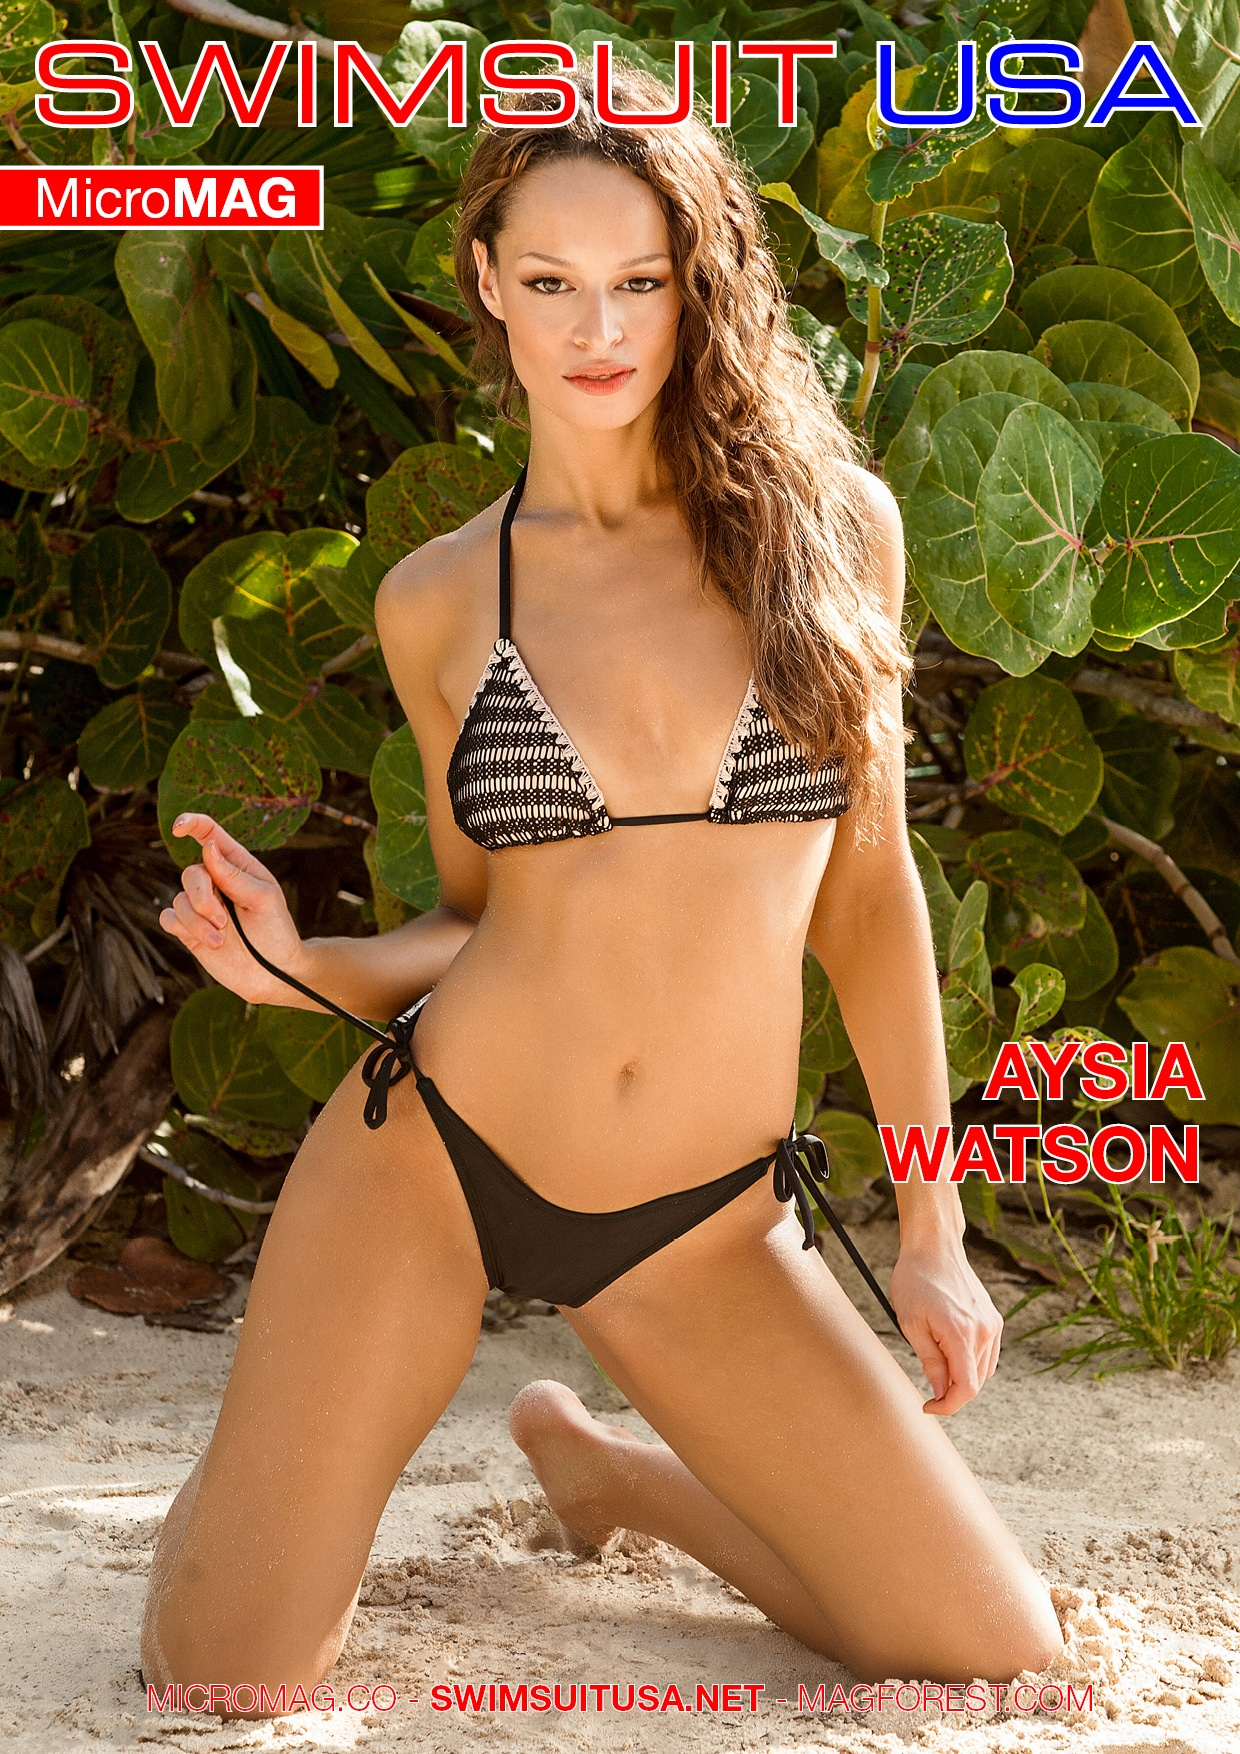 Swimsuit USA MicroMAG - Aysia Watson - Issue 3 2